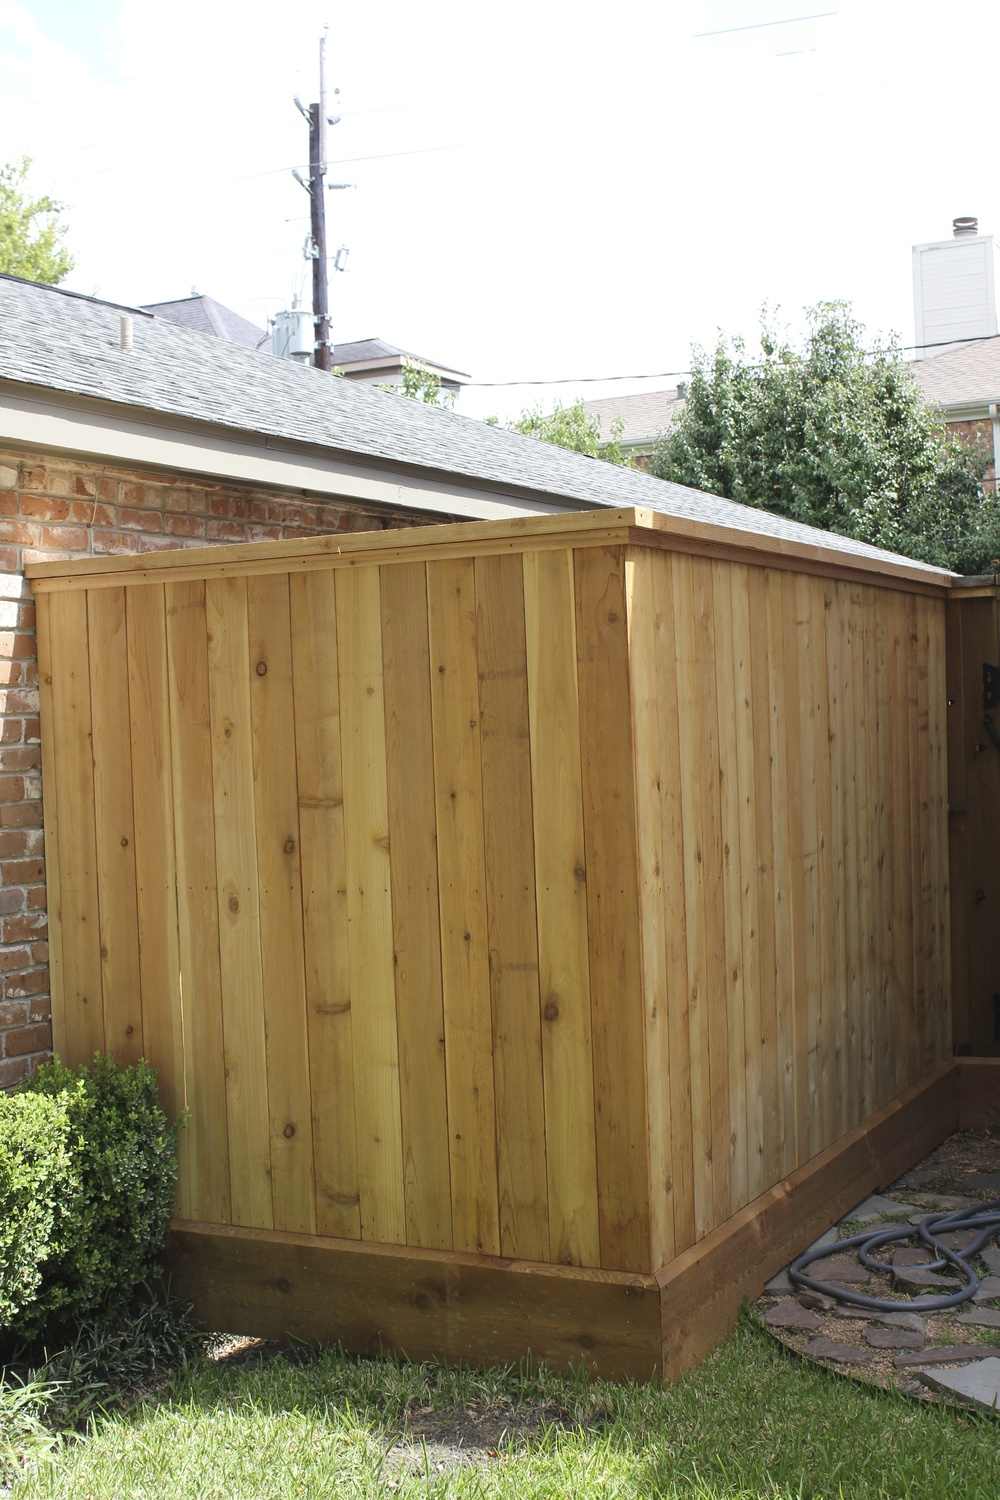 New Fence to cover ac unit in Houston, TX